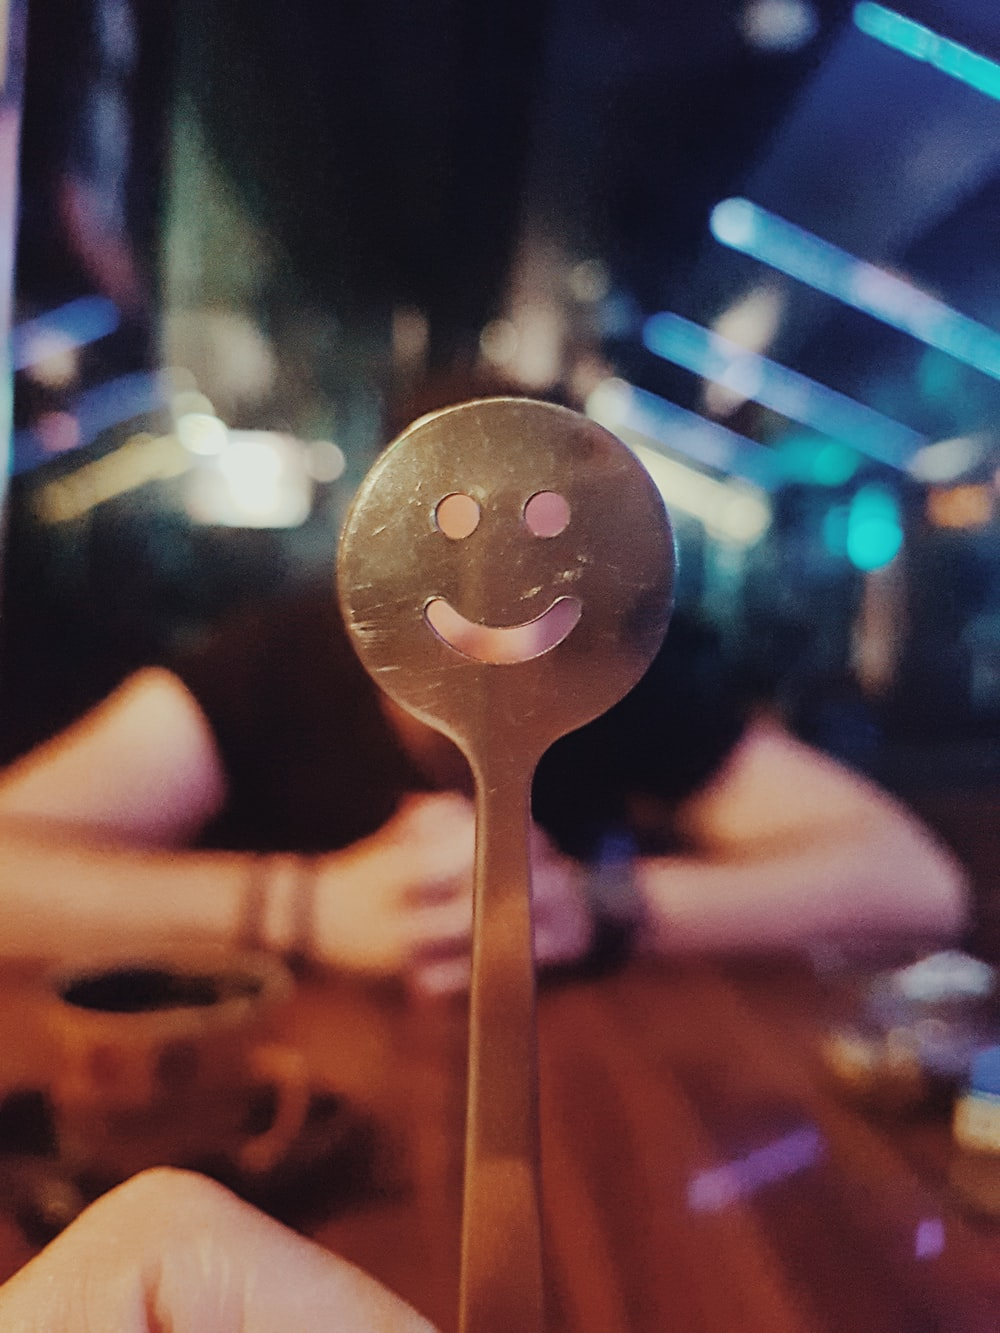 person holding silver spoon with light